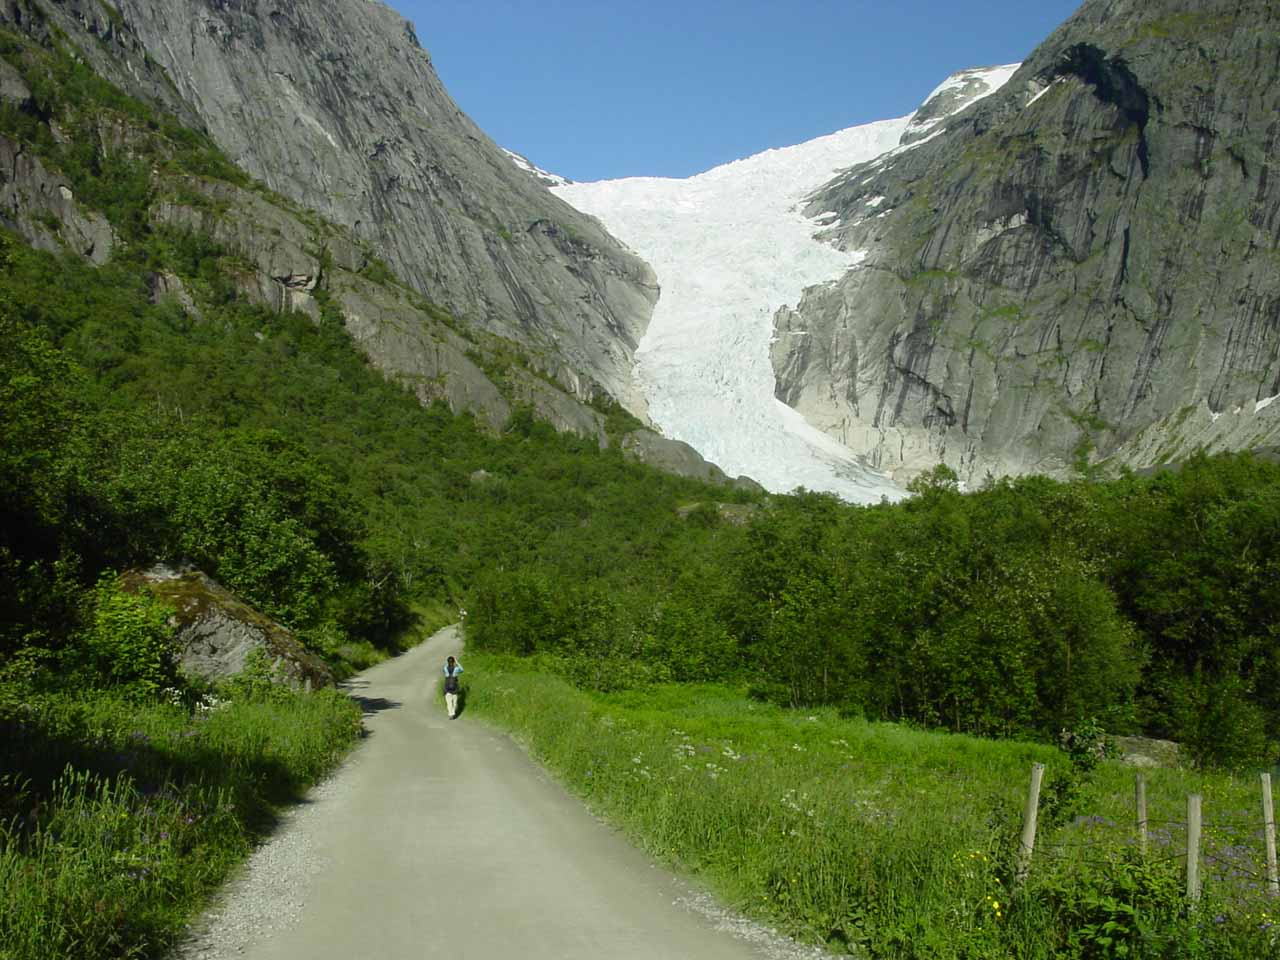 Approaching the attractive Briksdal Glacier with a hastened pace and second wind